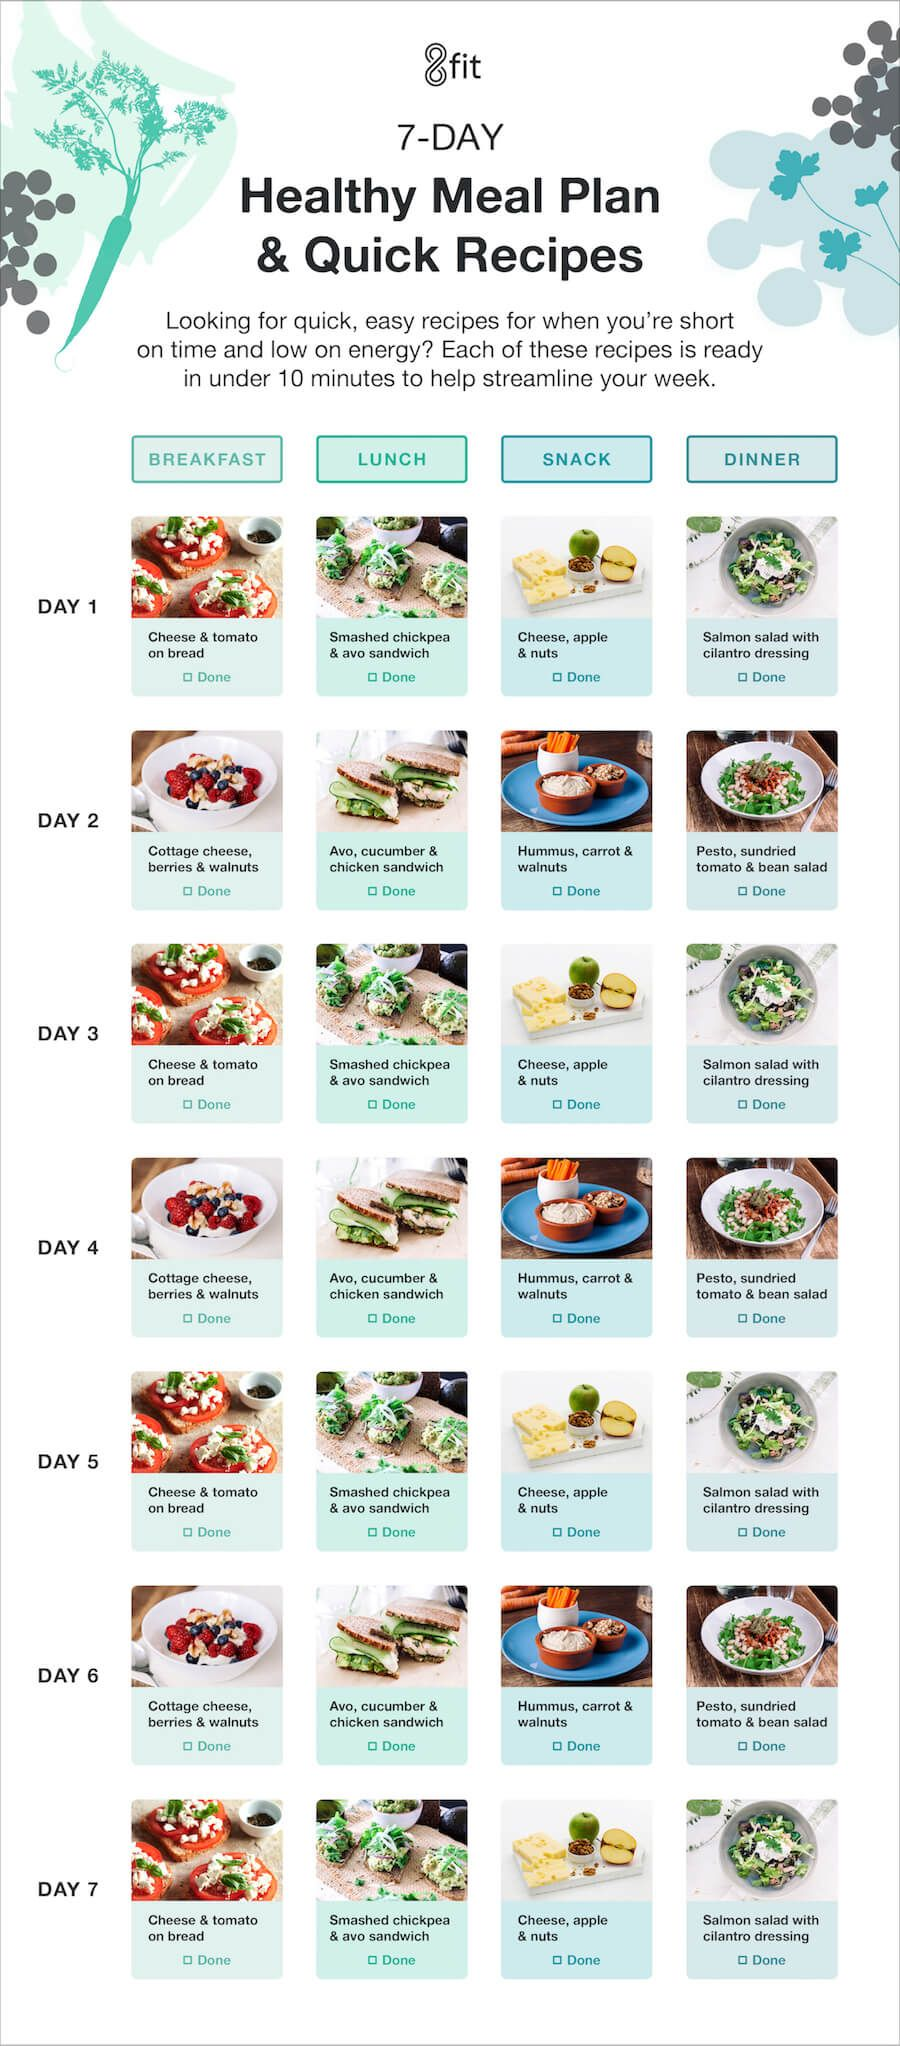 7-Day Healthy Meal Planner with Grocery List and Recipes images